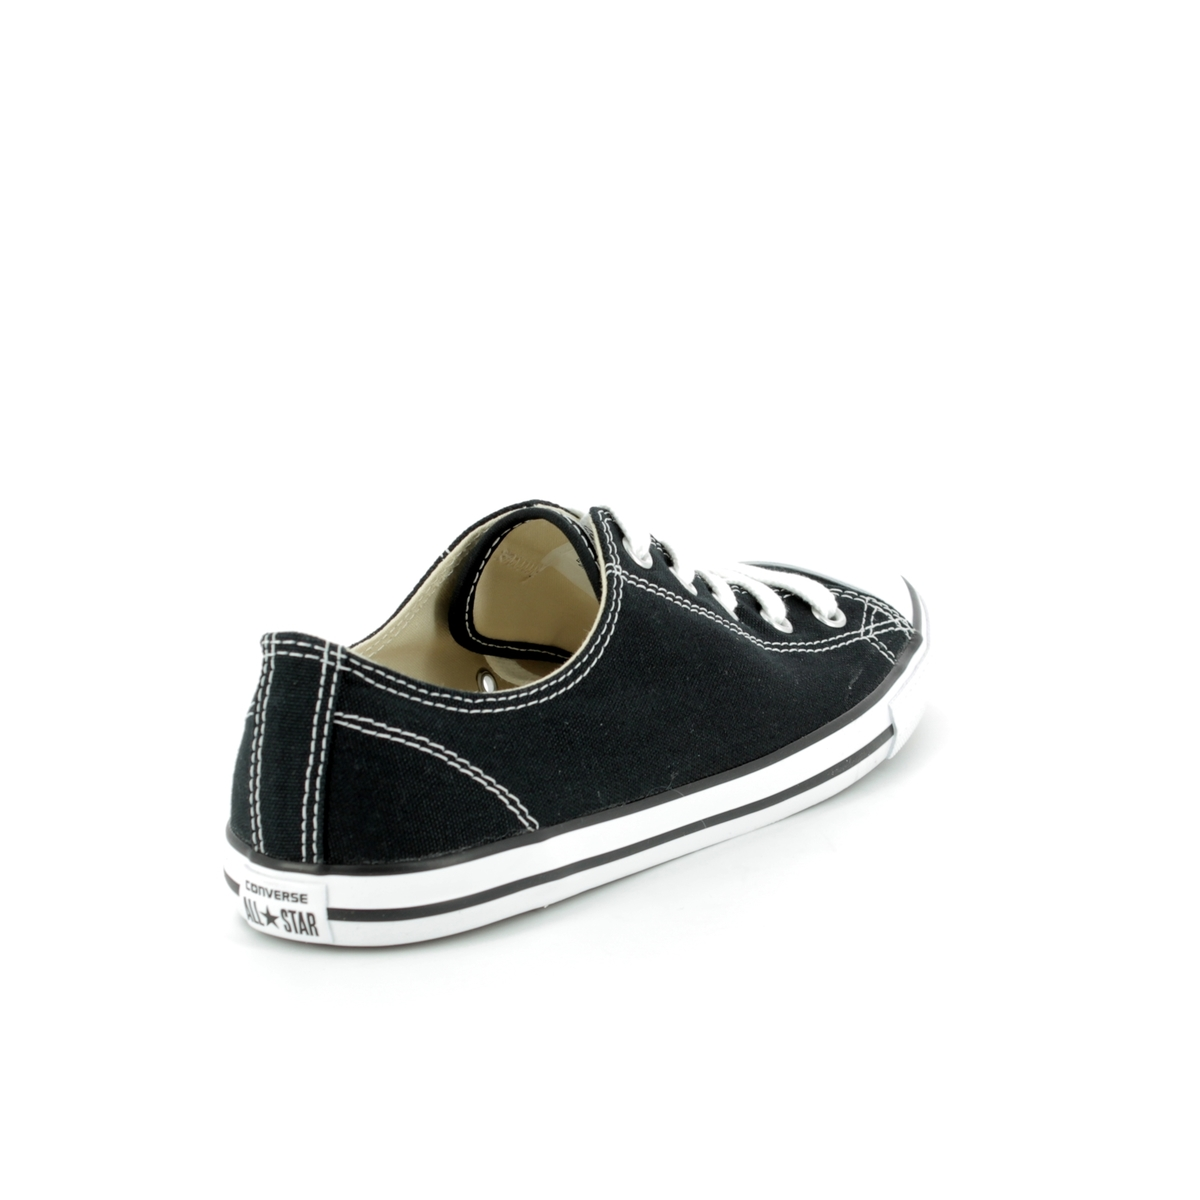 530054c All Star Dainty Ox at Begg Shoes & Bags